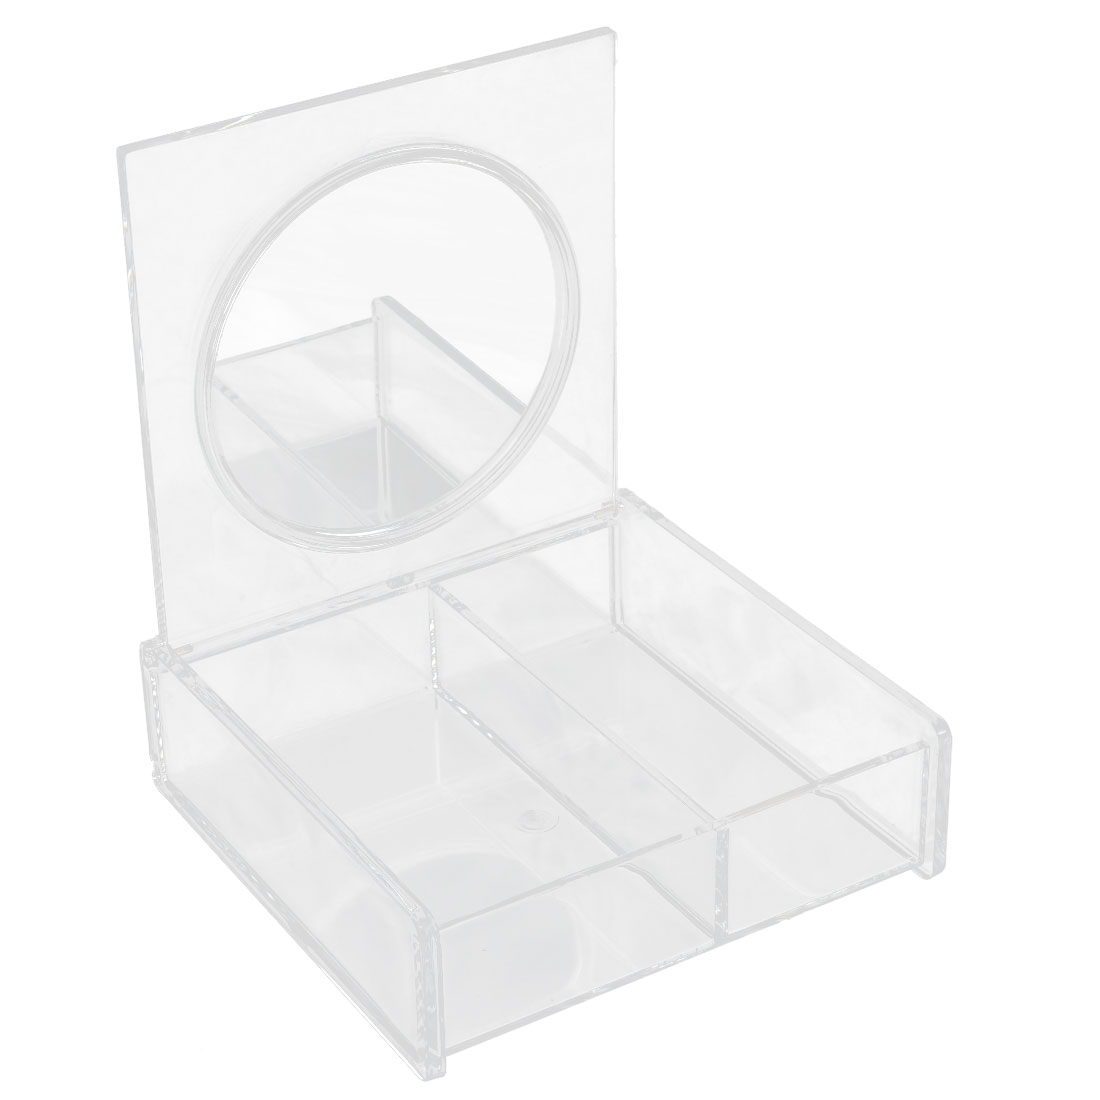 Bedroom Dresser Acrylic 2 Compartments Cosmetics Organizer Makeup Case Box Holder Clear